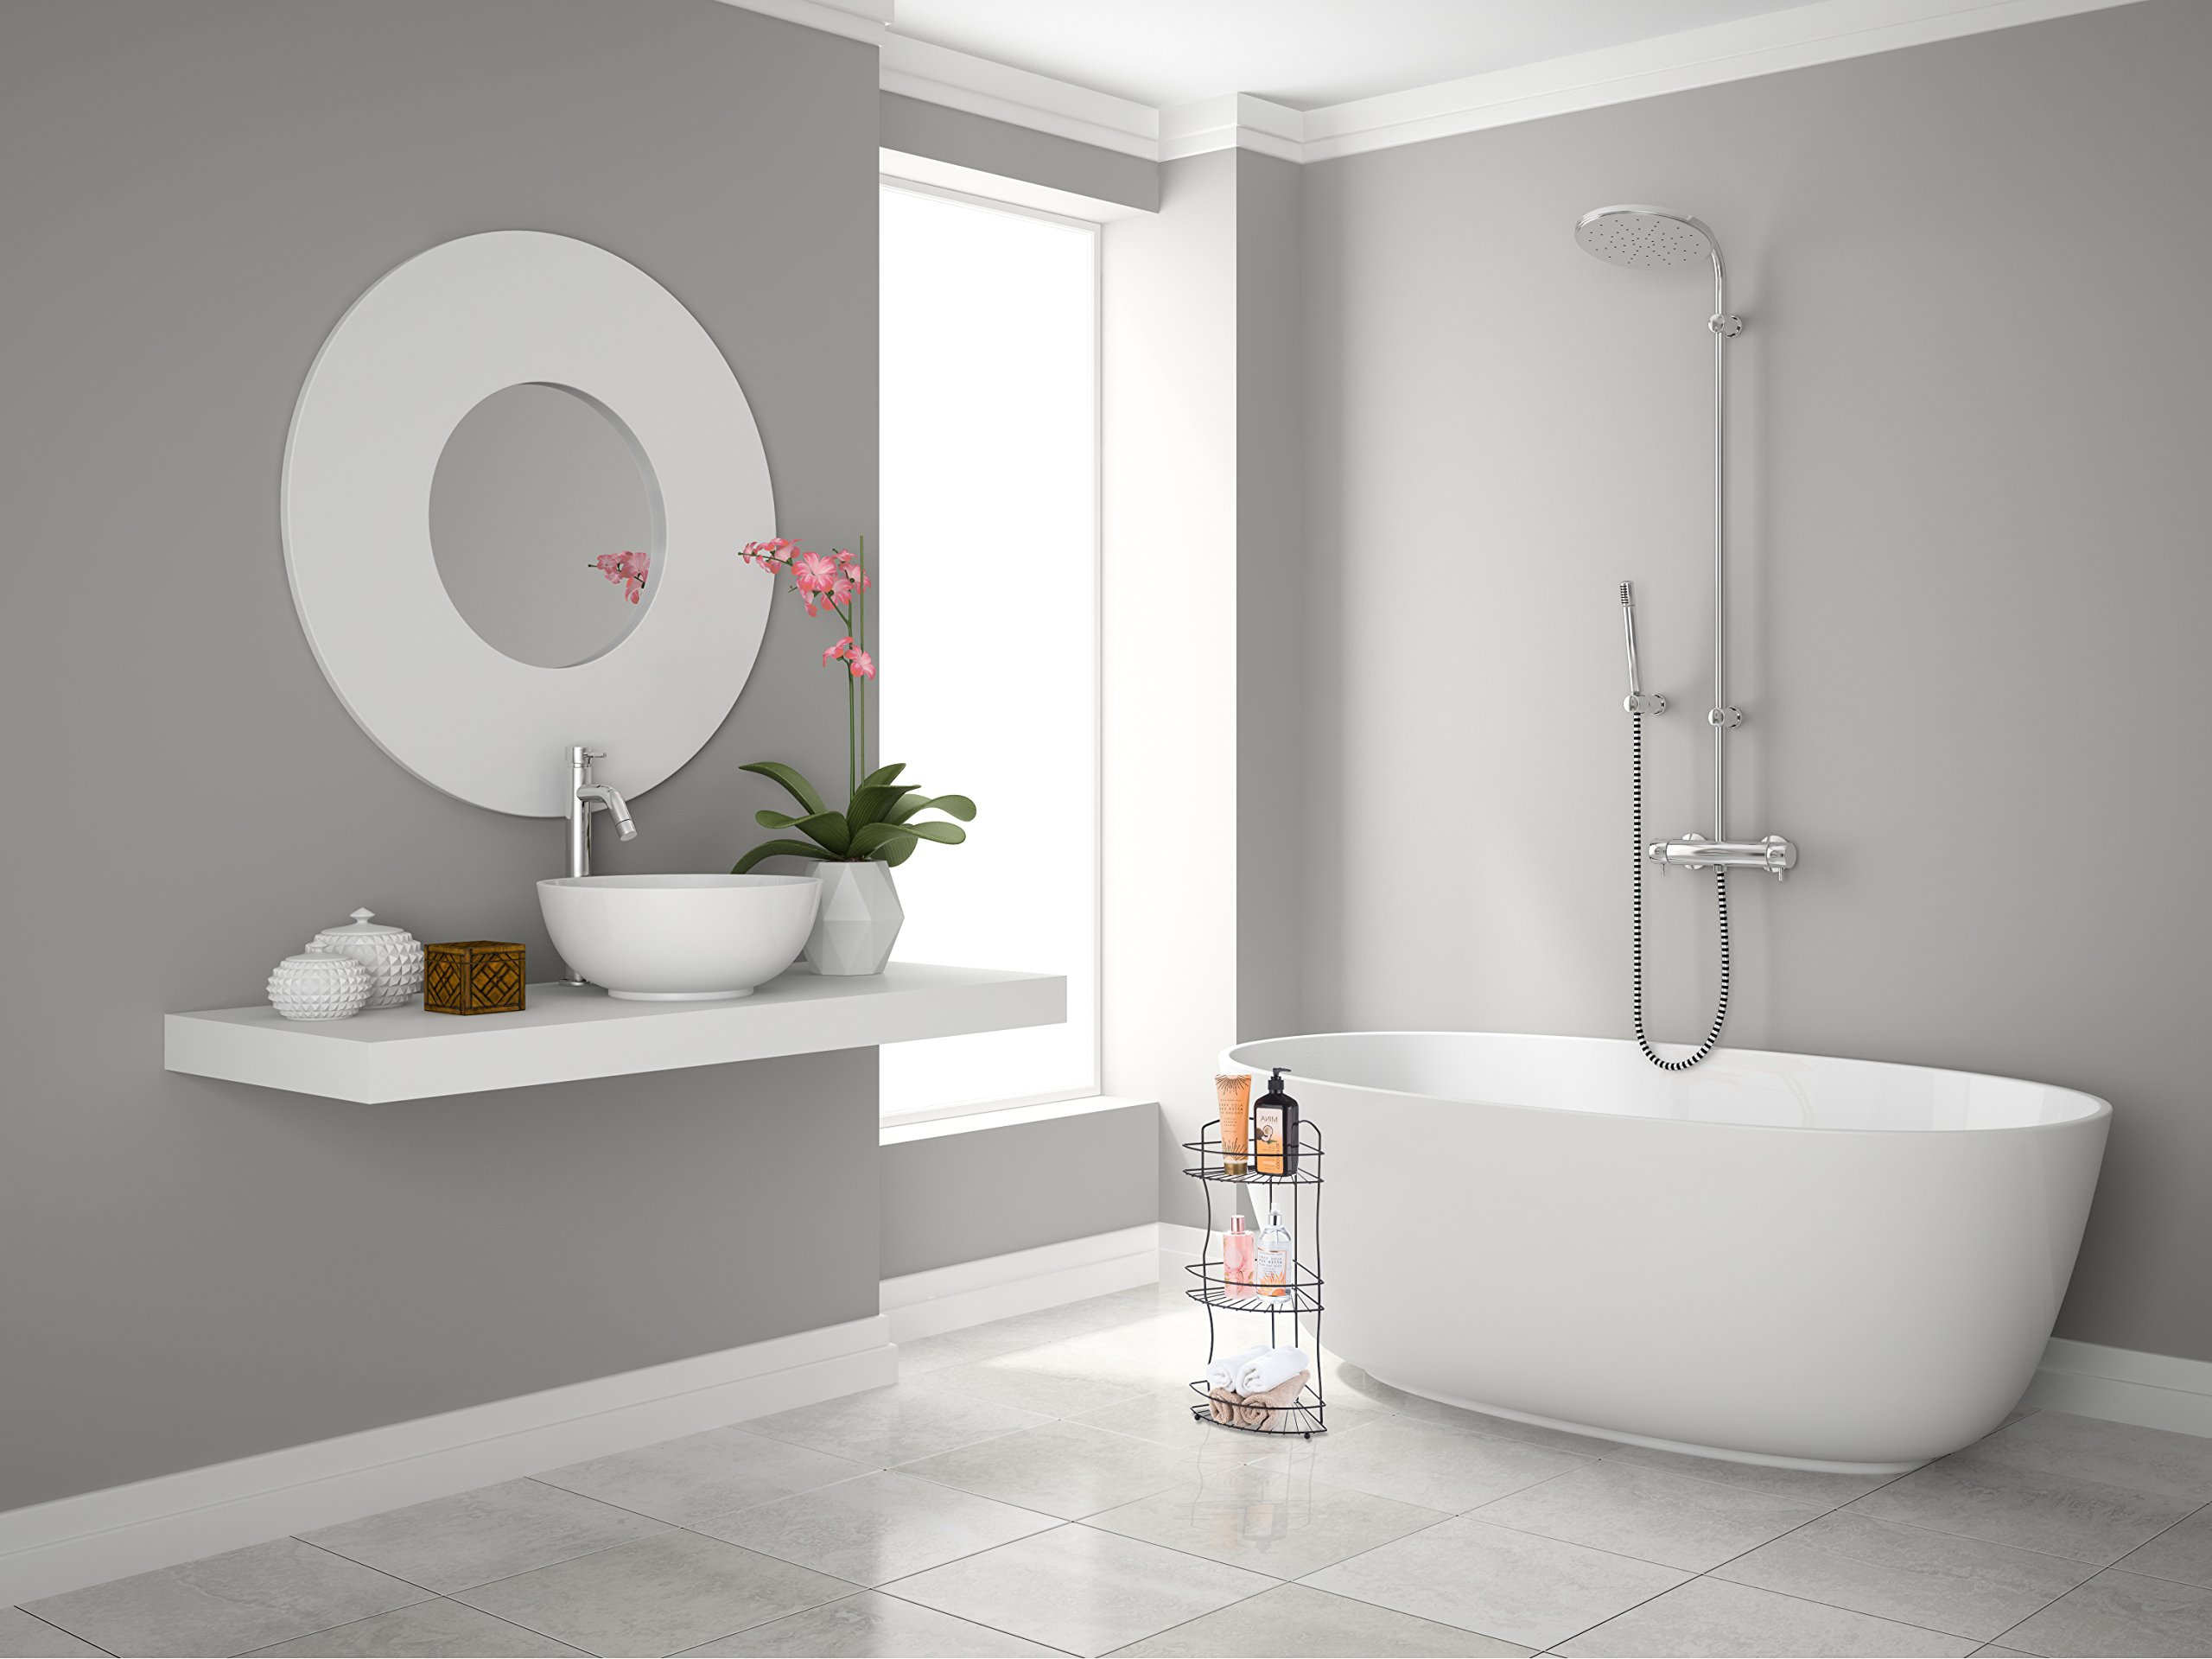 AMG and Enchante Accessories Free Standing Bathroom Spa Tower Floor Caddy, FC232-A BKN, Black Nickel by AMG (Image #3)